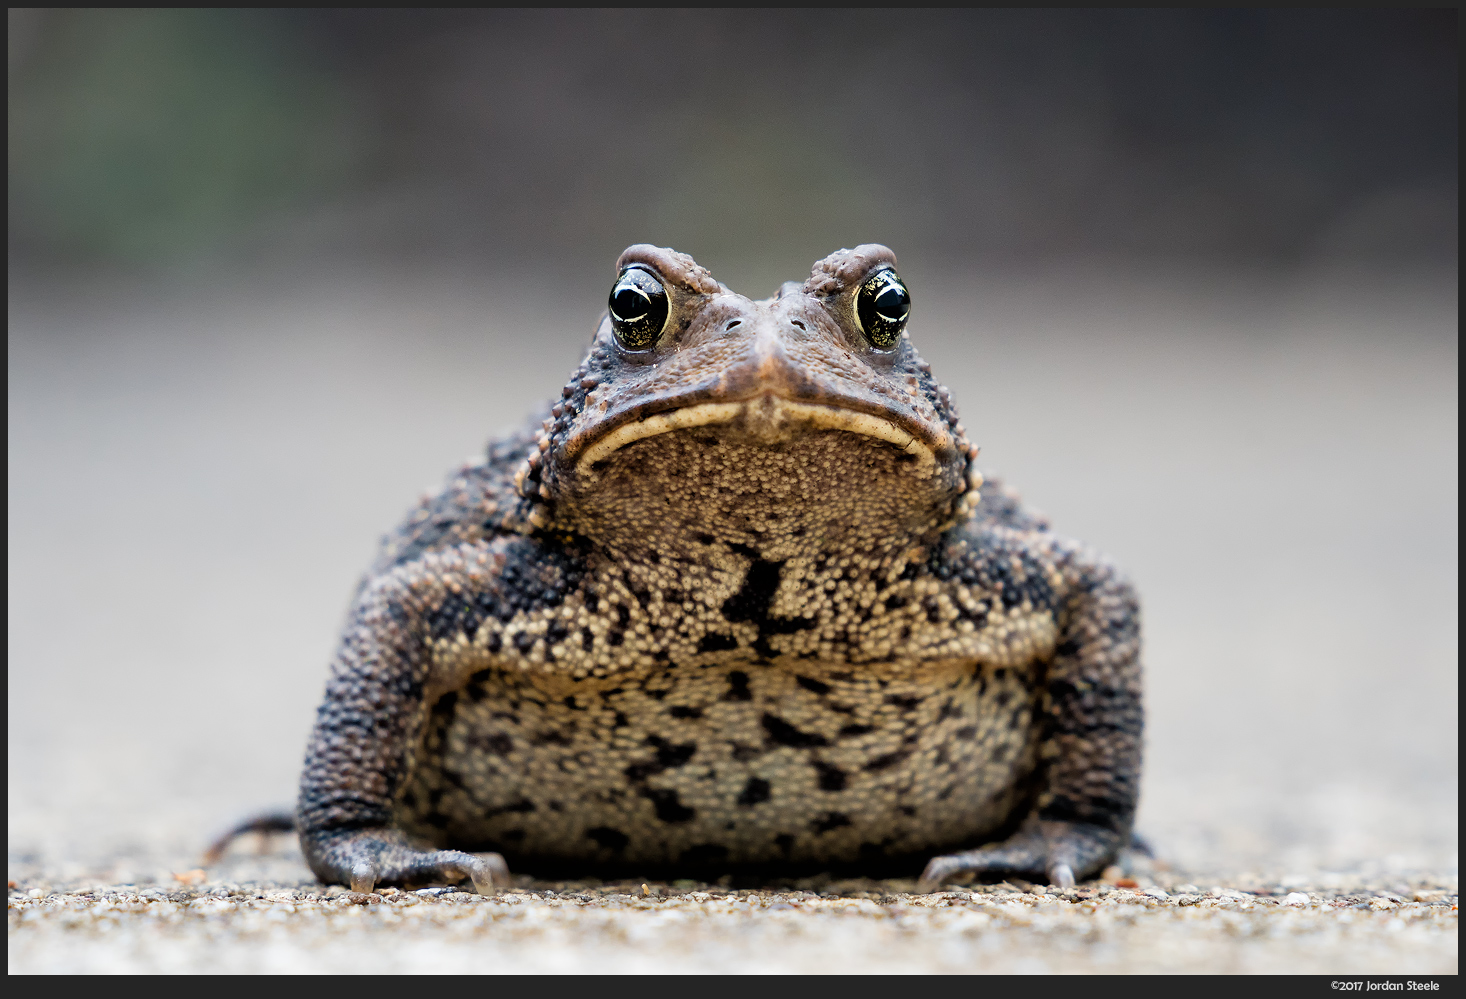 Toad - Sony A9 with FE 70-200mm f/2.8 GM + 1.4x TC @